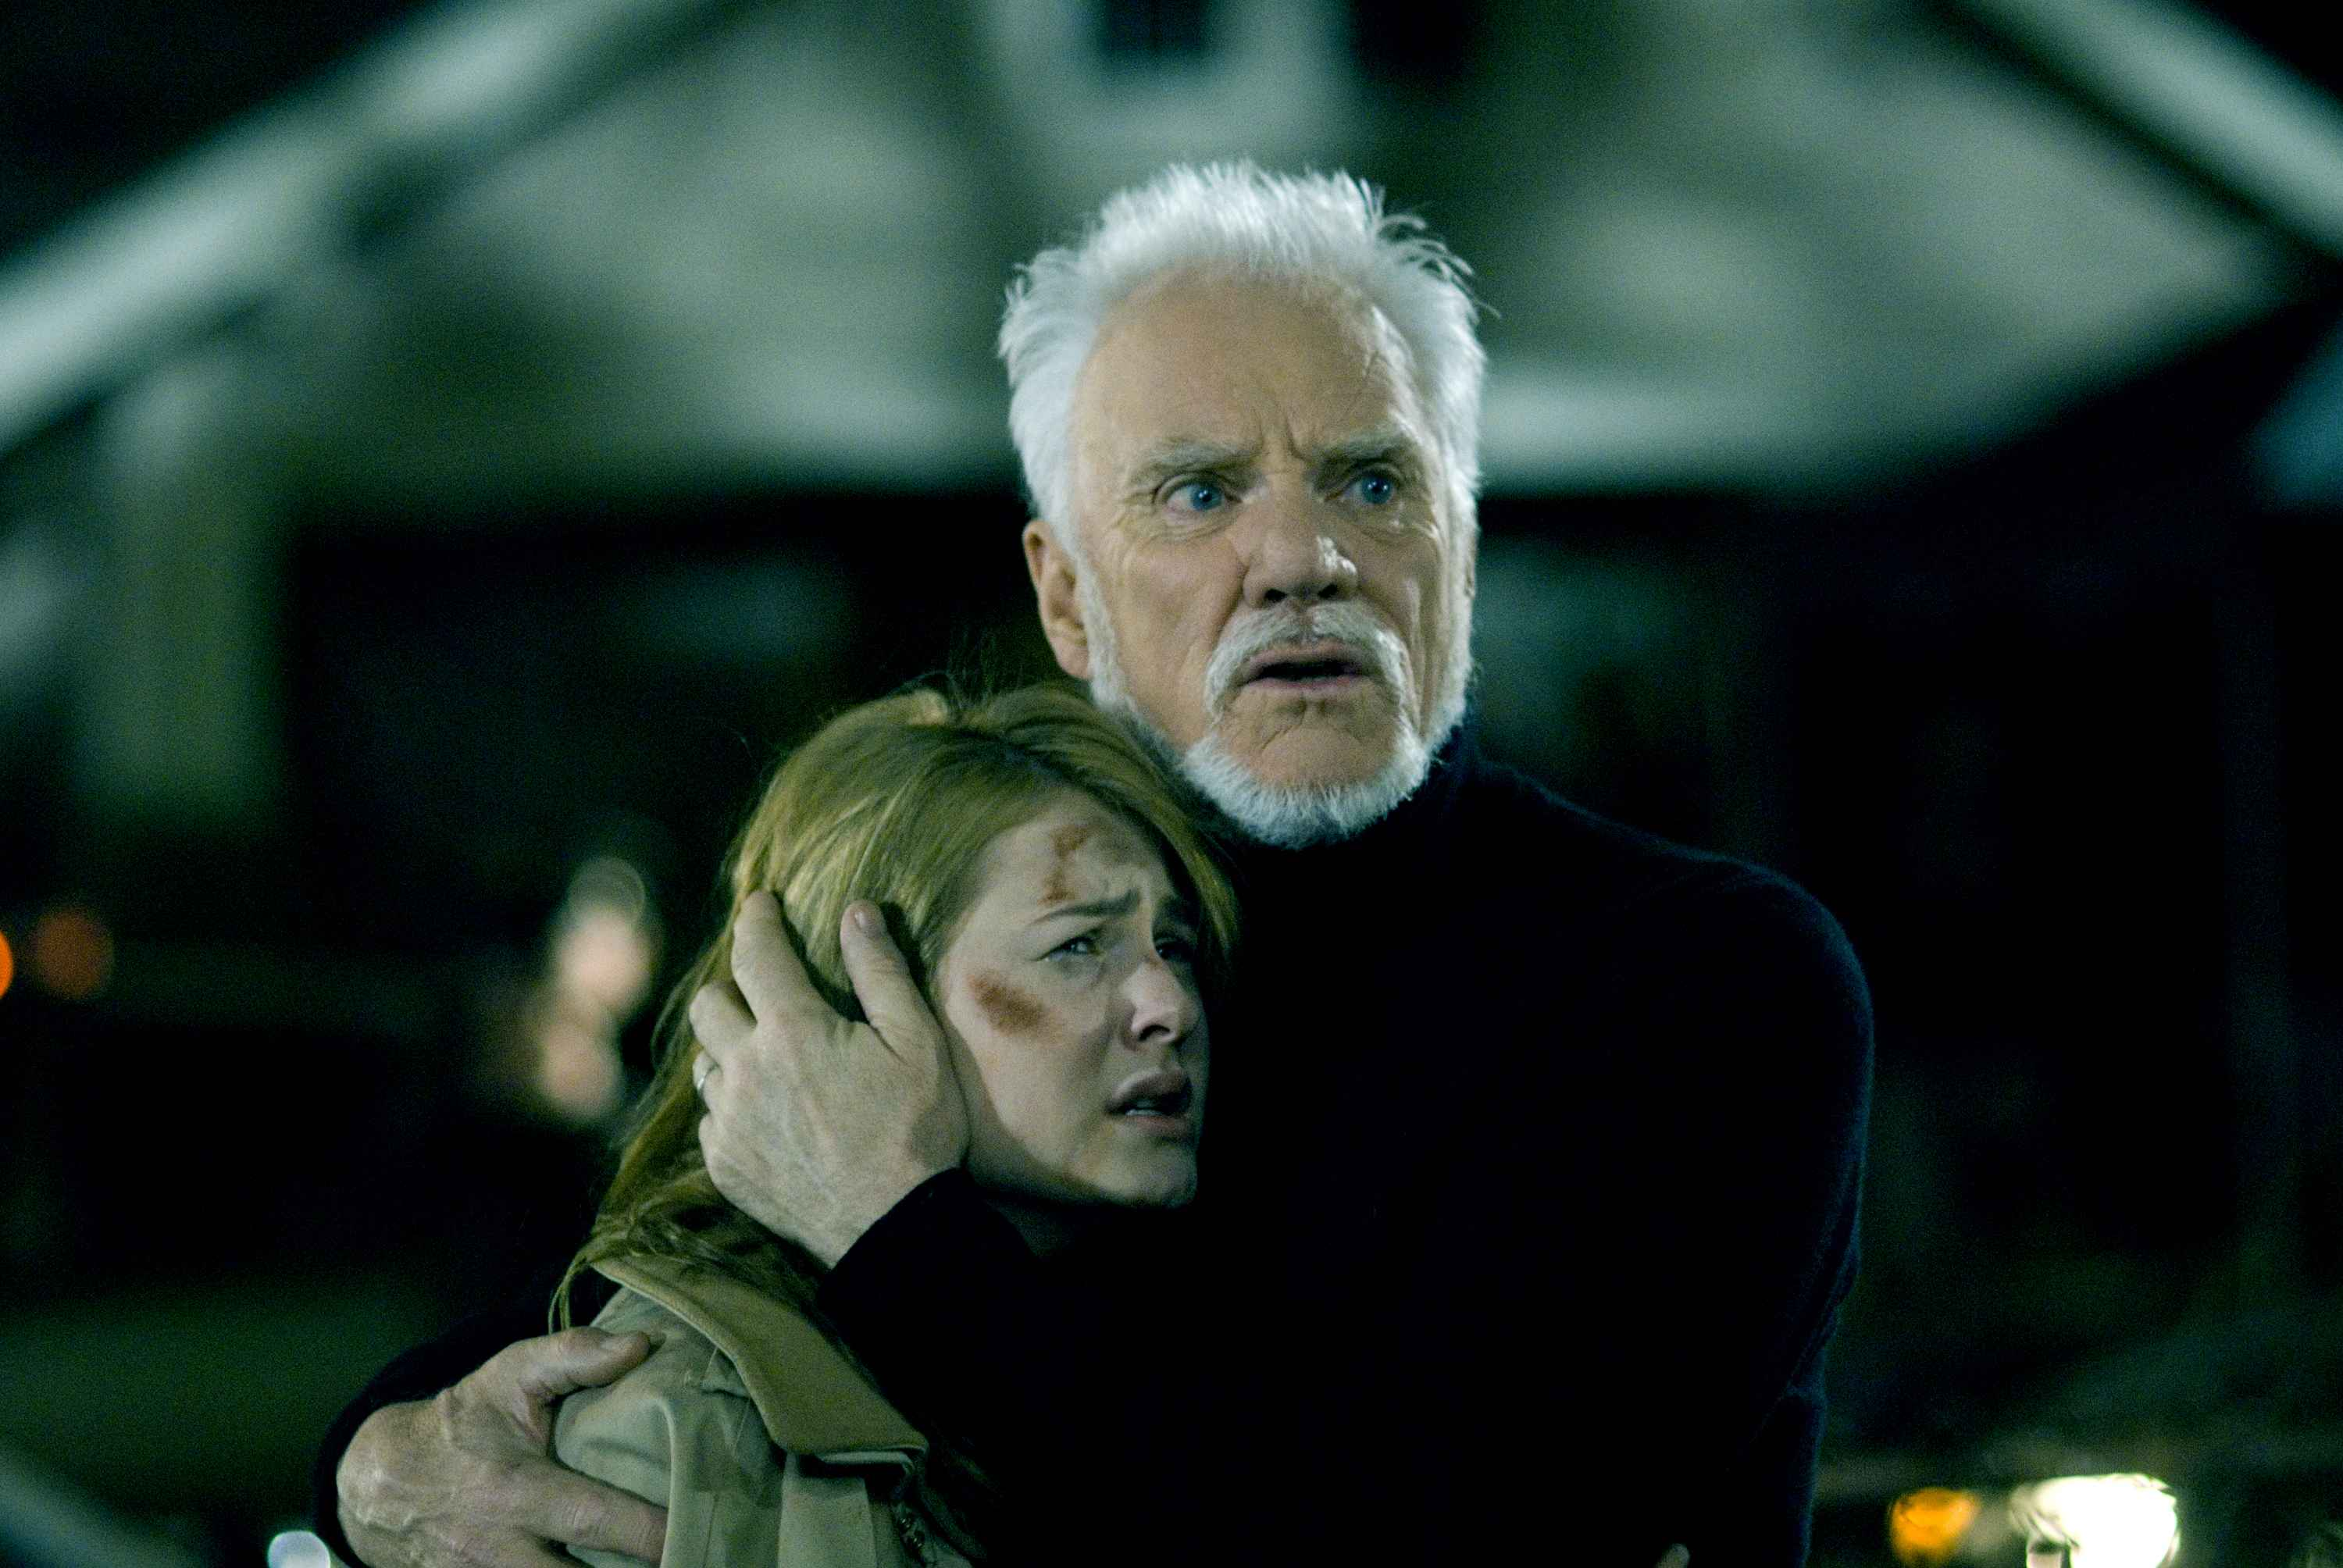 Dr Loomis (Malcolm McDowell) comforts Laurie Strode (Scout Taylor-Compton) in Halloween (2007)